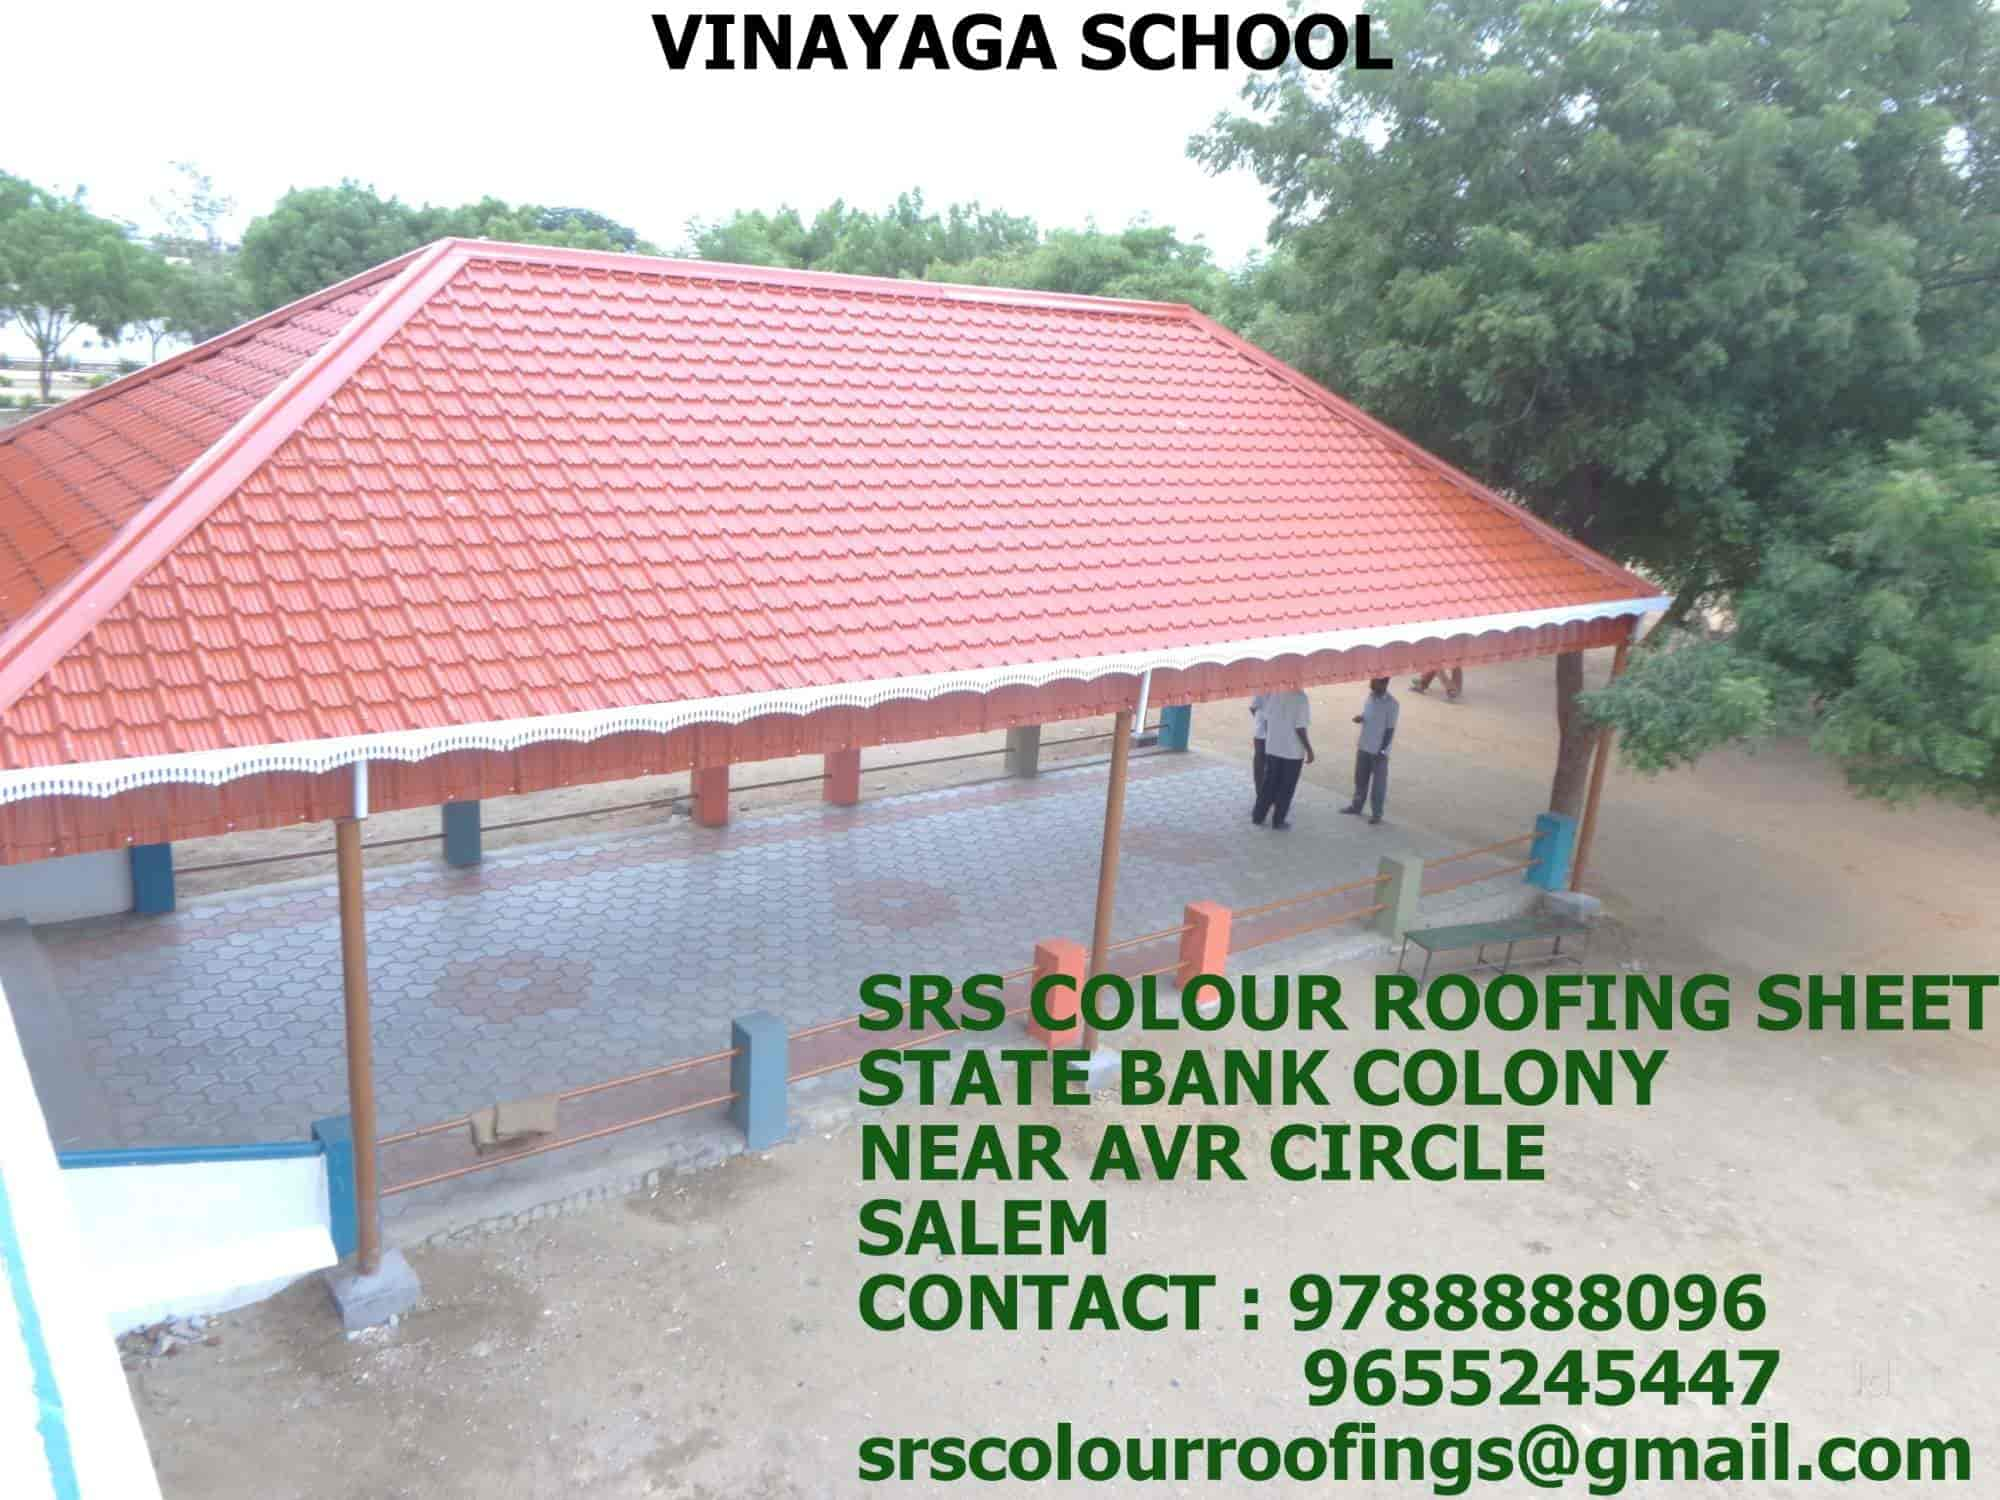 Srs Colour Roofing Sheet   Roofing Sheet Manufacturers In Ramanathapuram    Justdial